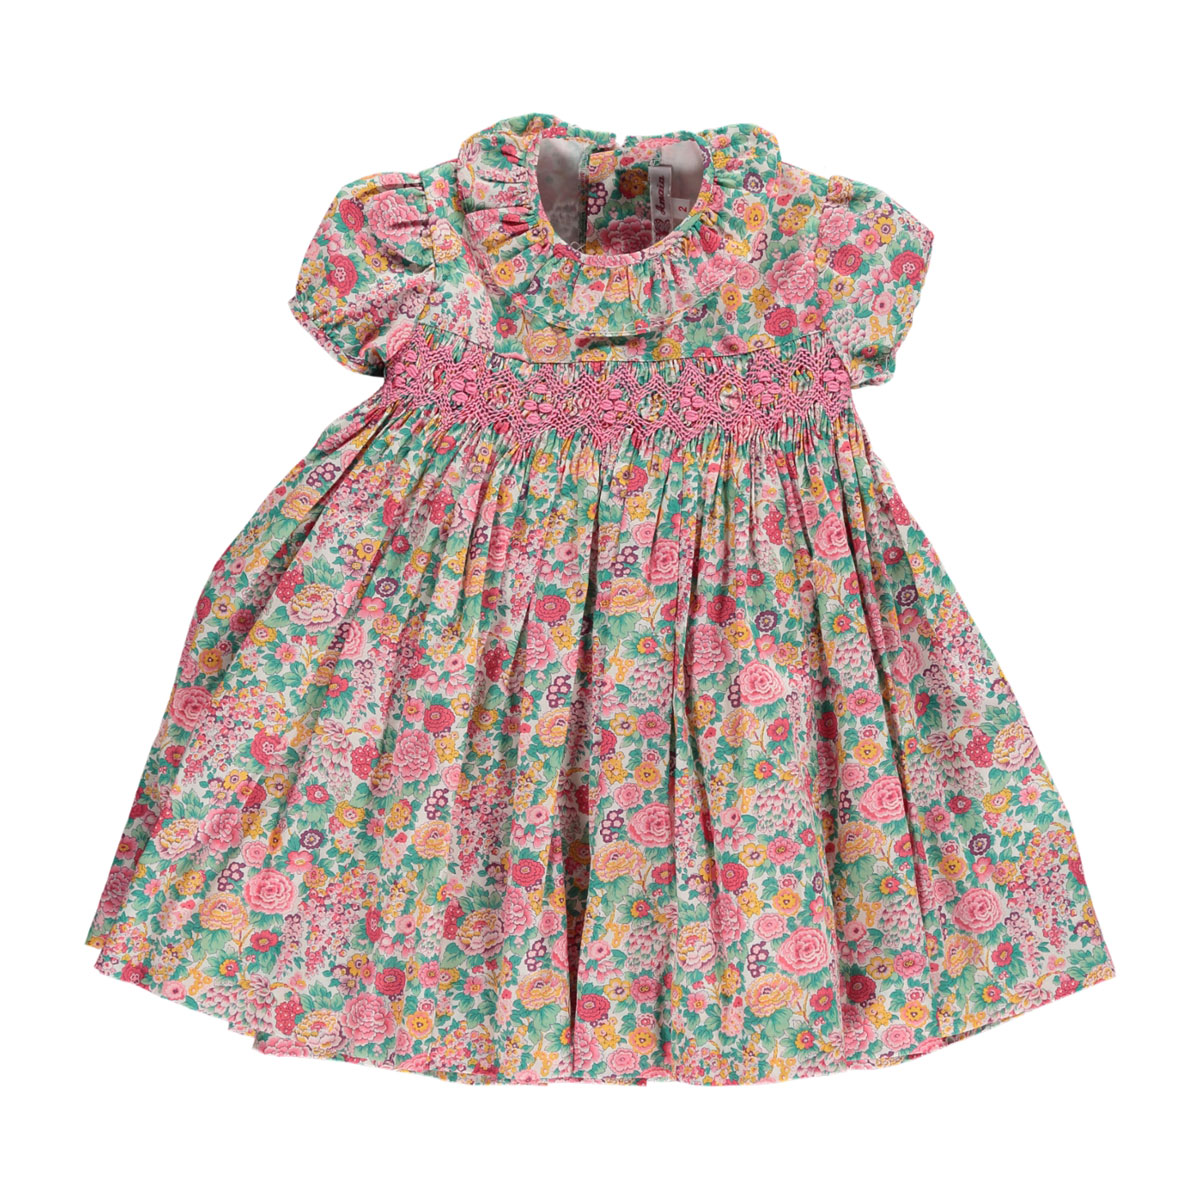 Amaia Moohren Short Sleeve Dress in Pink Floral